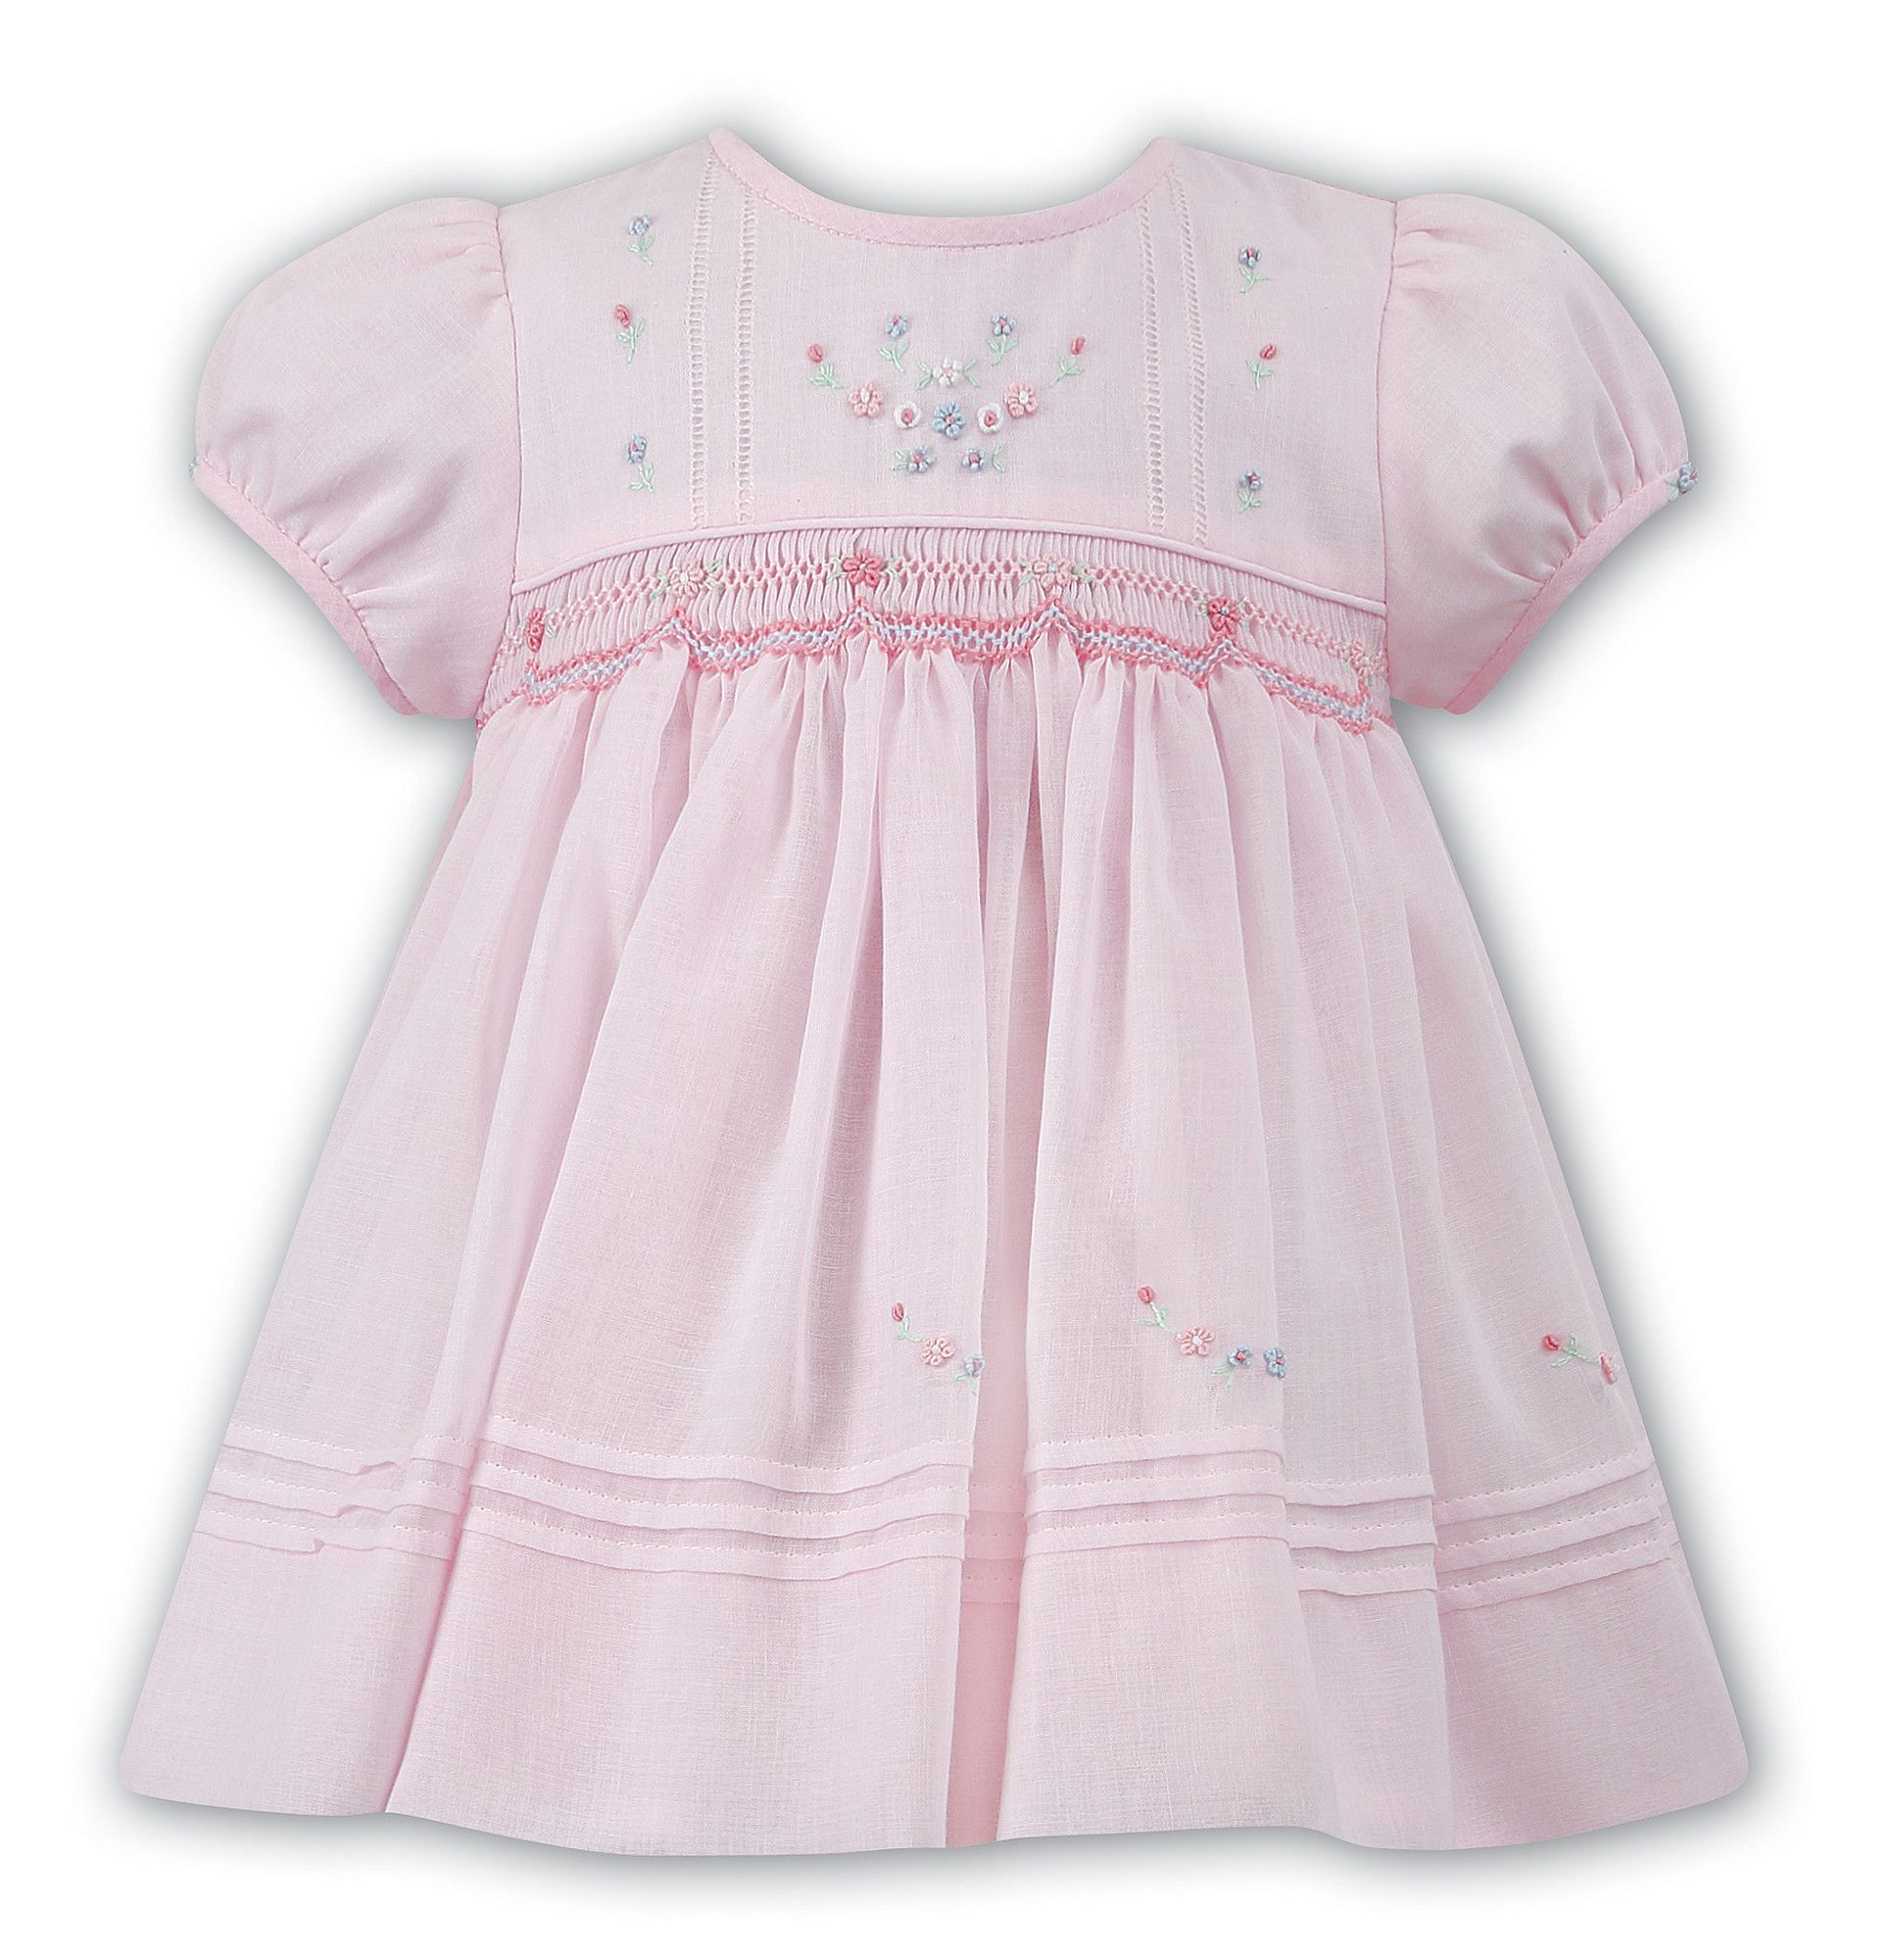 Sarah Louise Baby Girls Pink Voile Flower Smocked Dress 3 6 9 Months